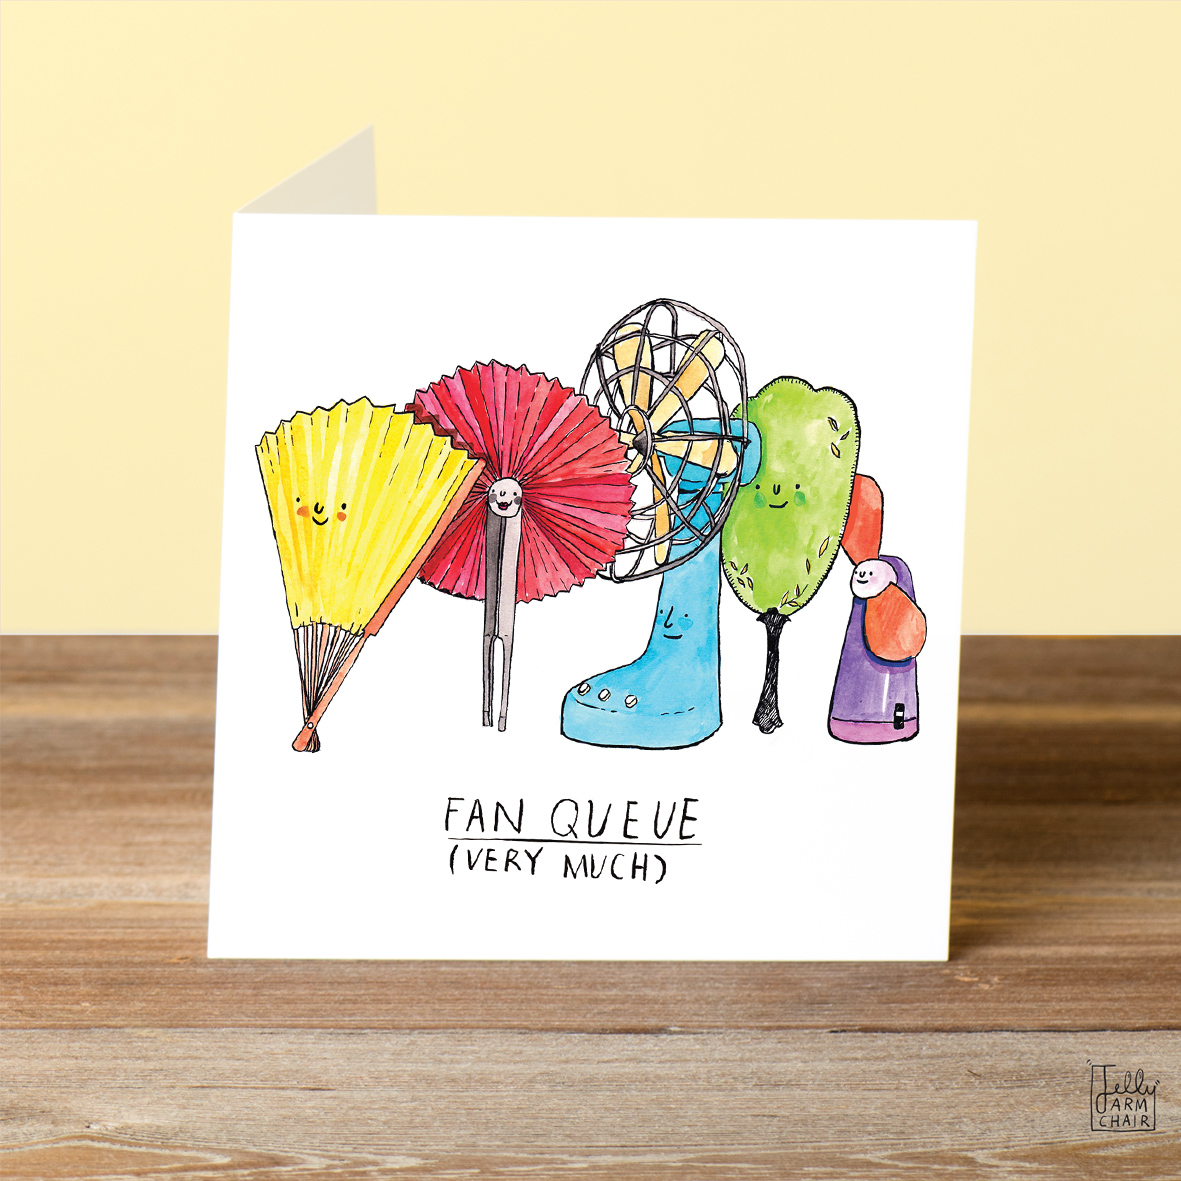 Fan-Queue_Thank-you-greetings-card-with-funny-pun-ideal-for-thank-you-notes_FW06_OT